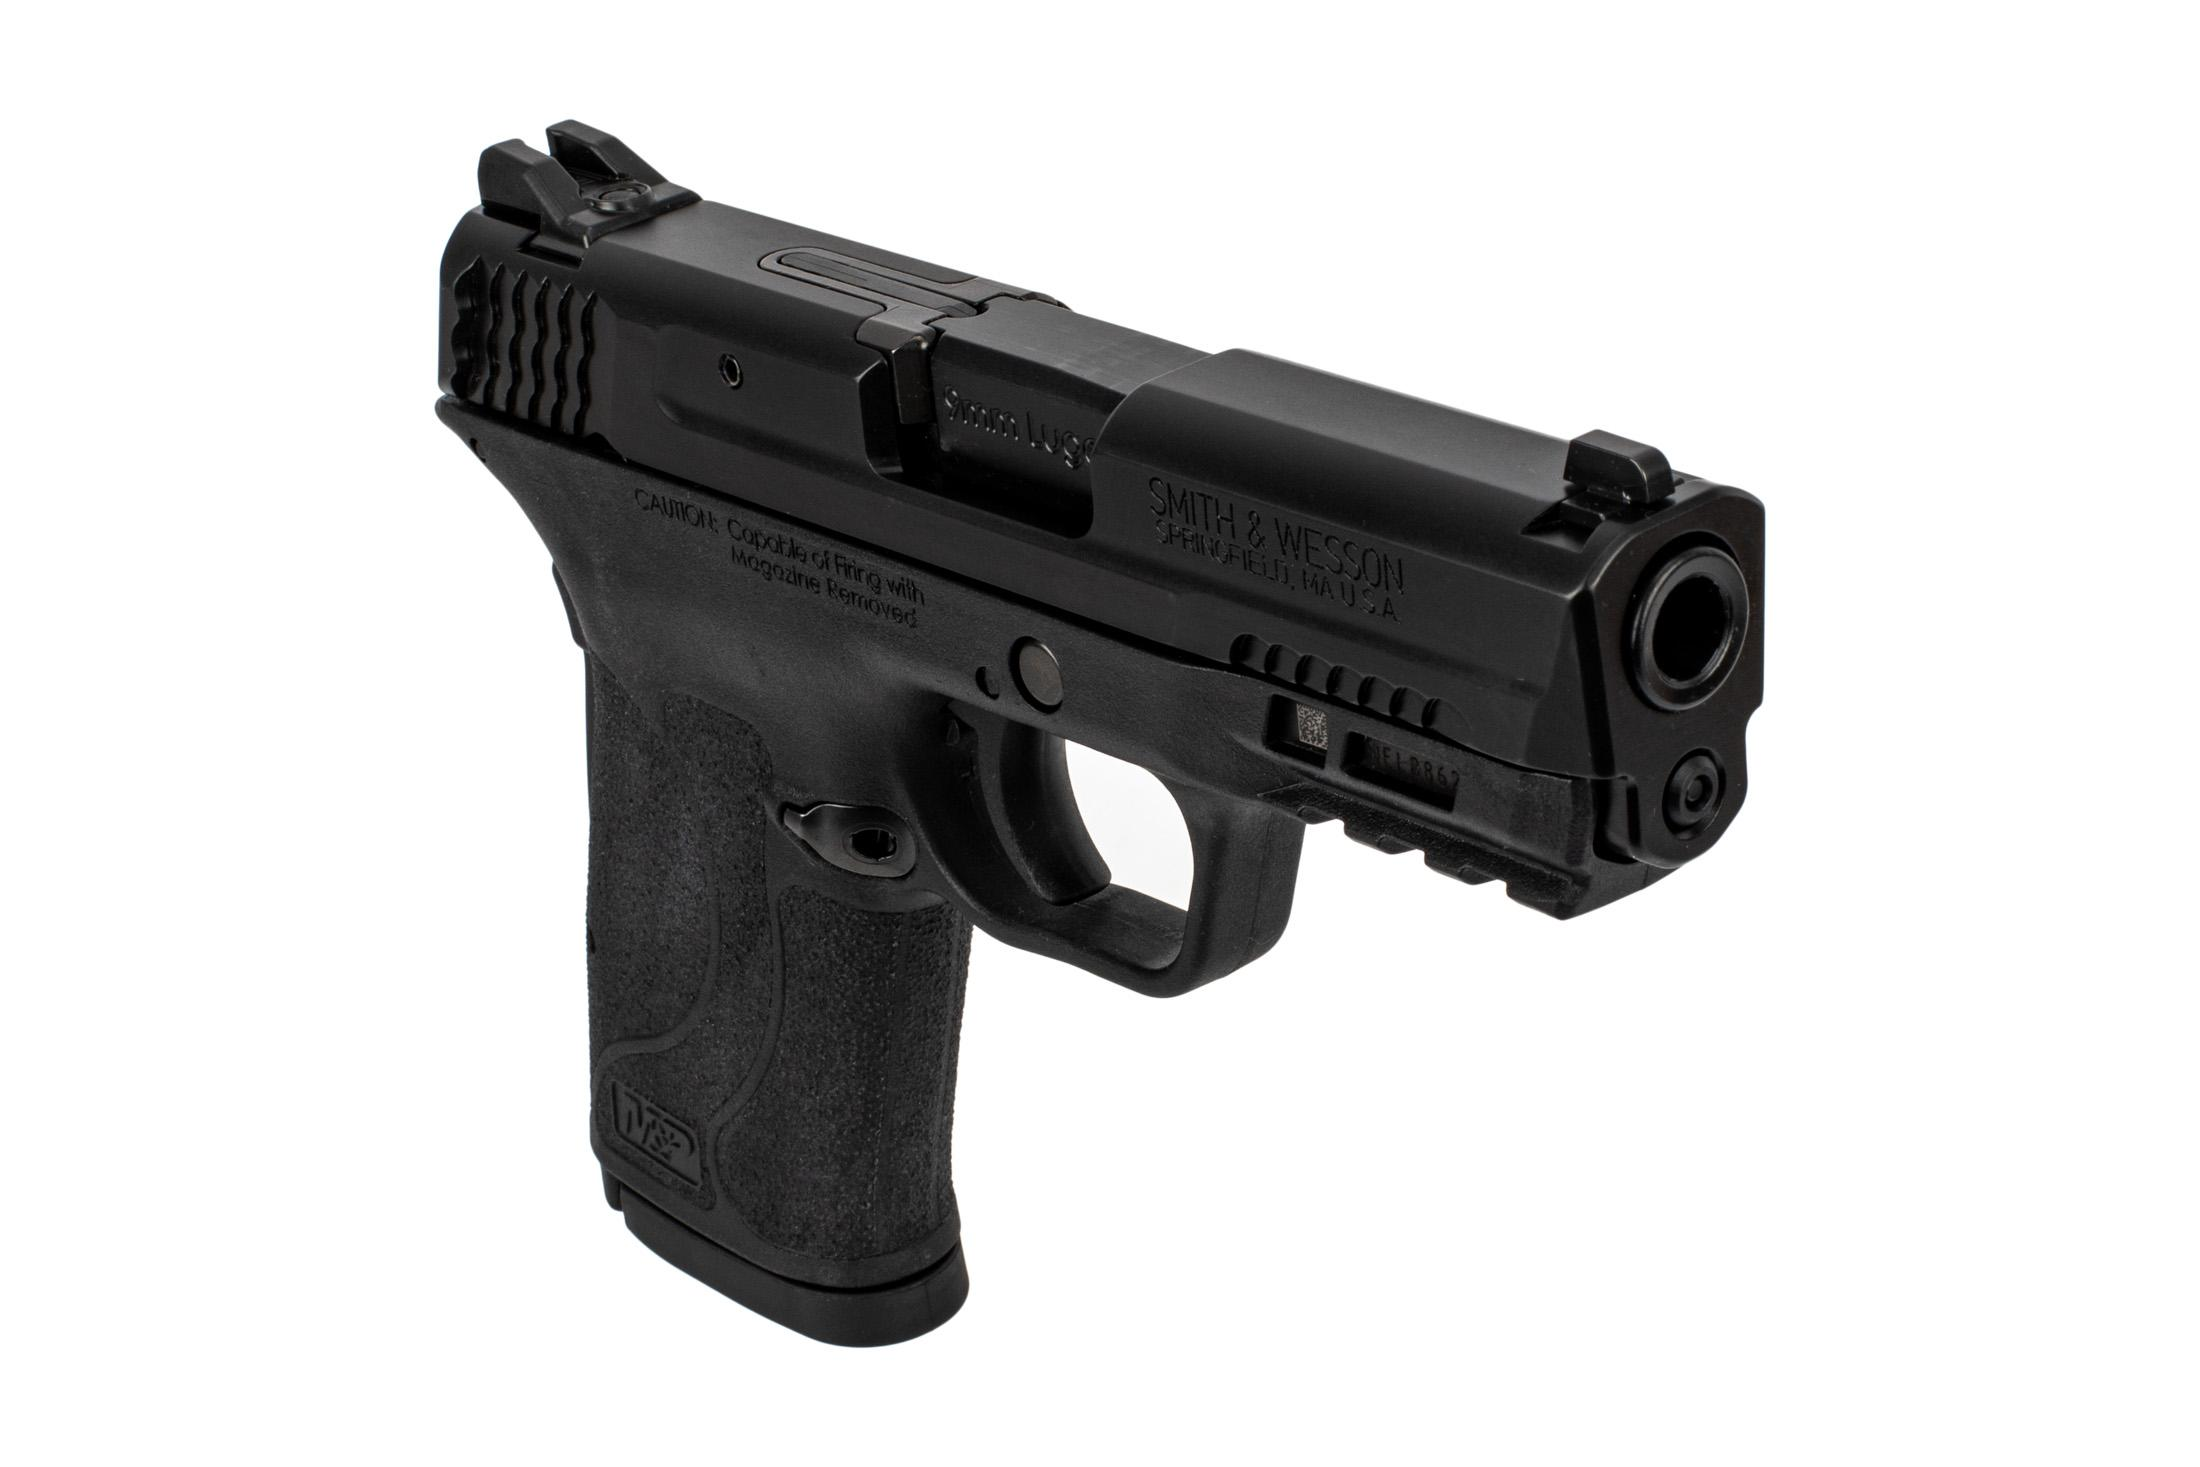 S&W M&P9 Shield EZ Pistol features a picatinny rail for attaching lights